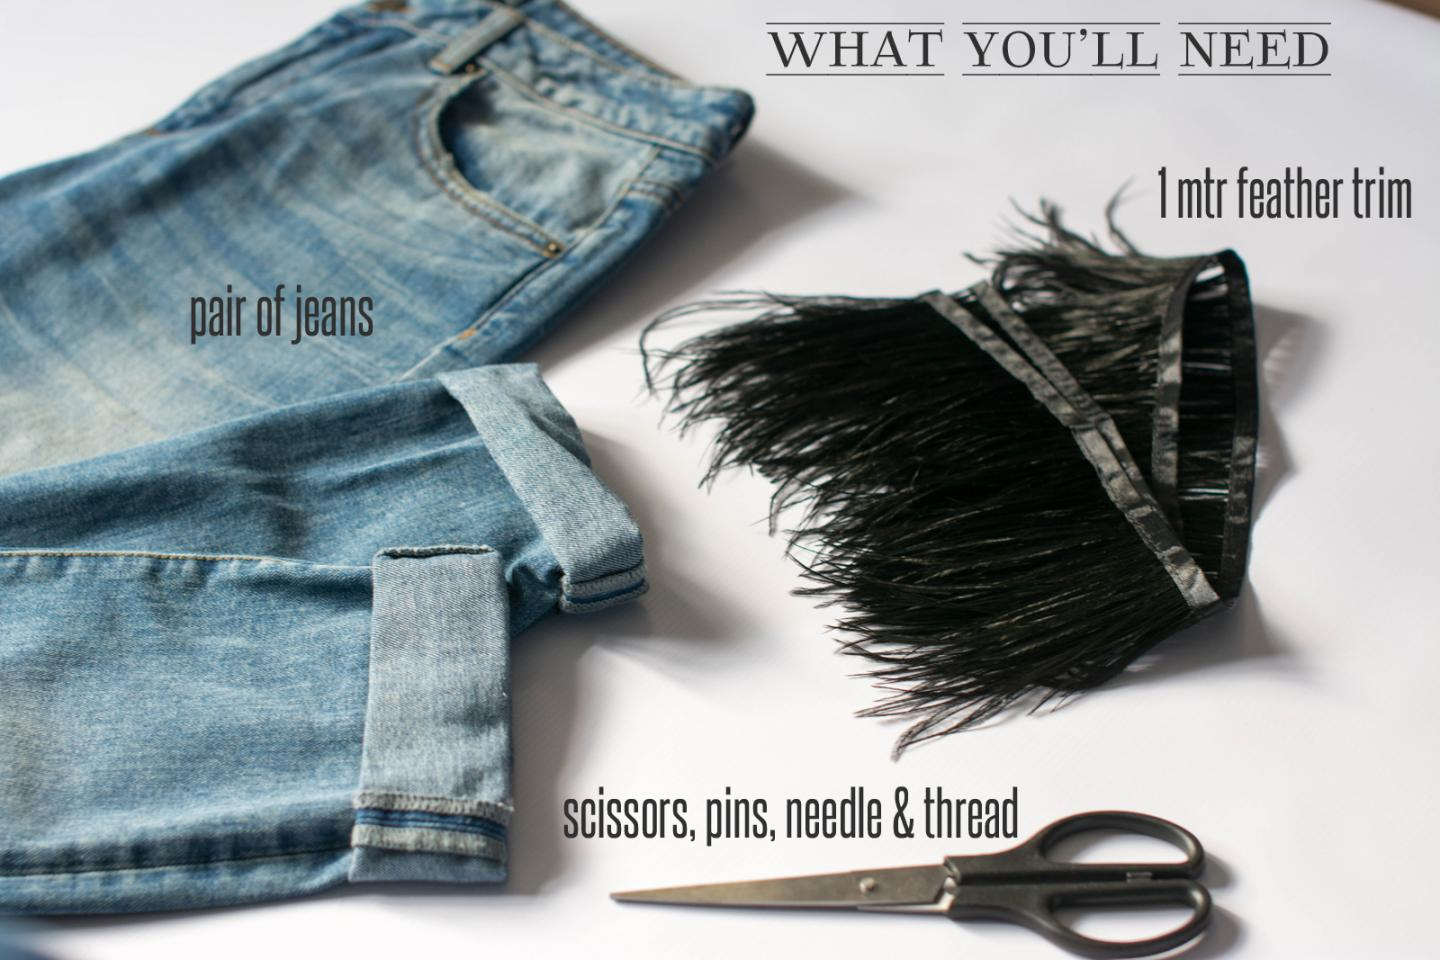 EJSTYLE - DIY Ostrich feather trim jeans, customise jeans, what you'll need